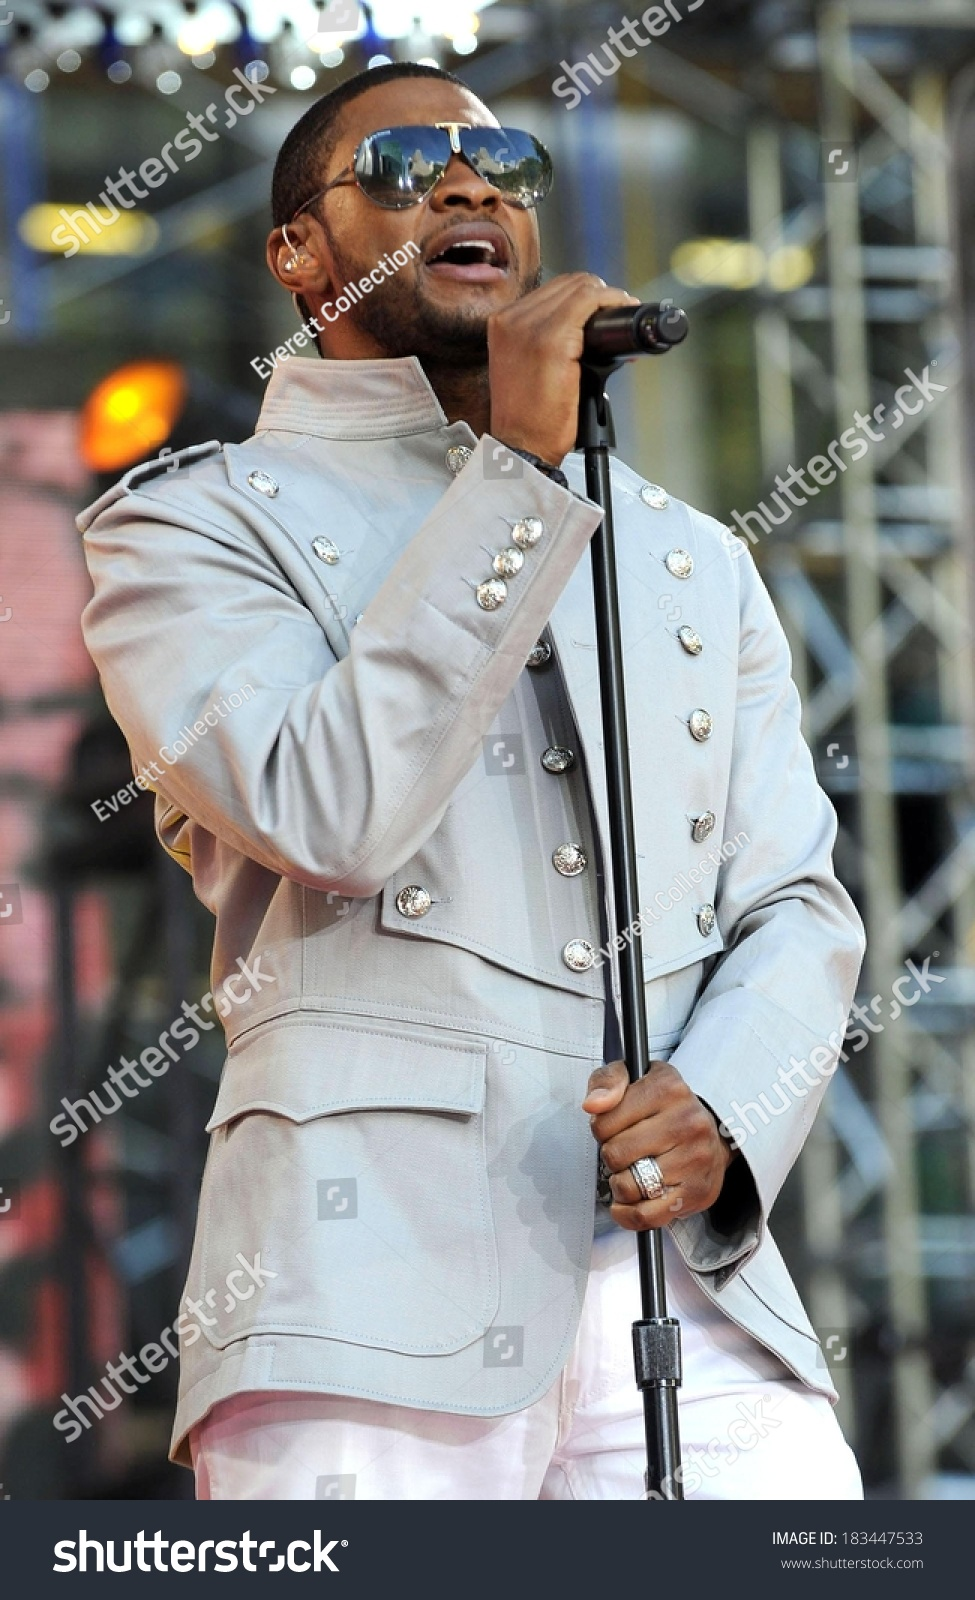 Usher On Stage Abc Gma Concert Stock Photo Edit Now 183447533